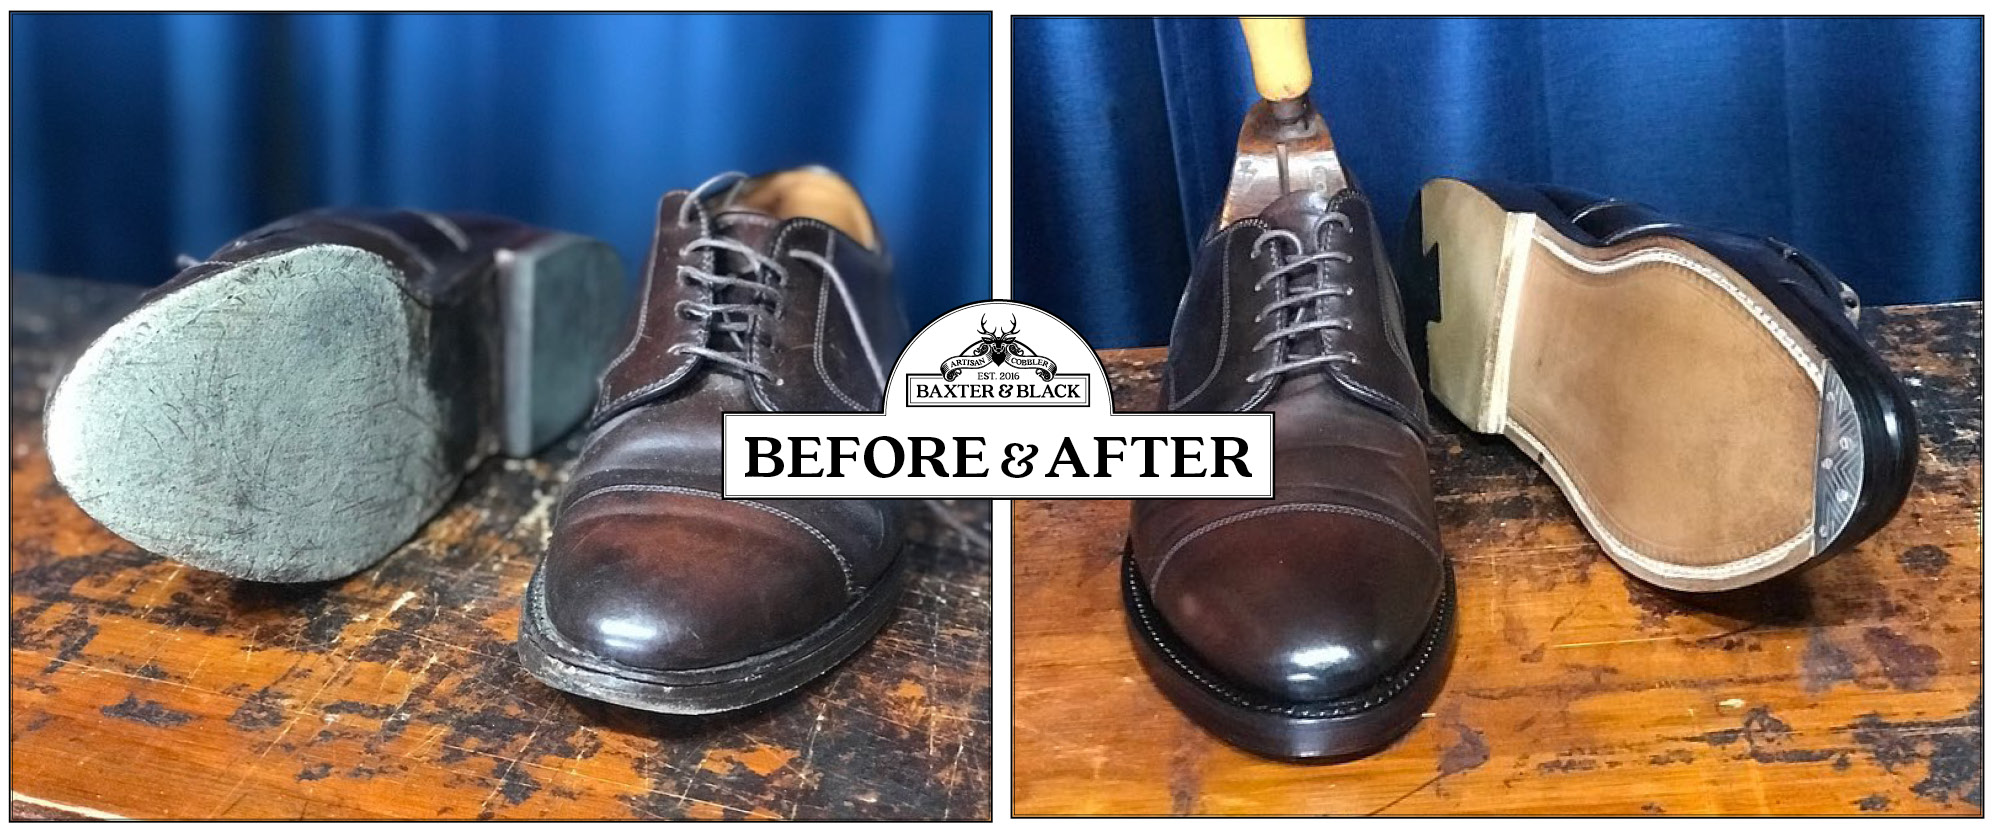 Before-and-After-Cordovan-Alden-recraft